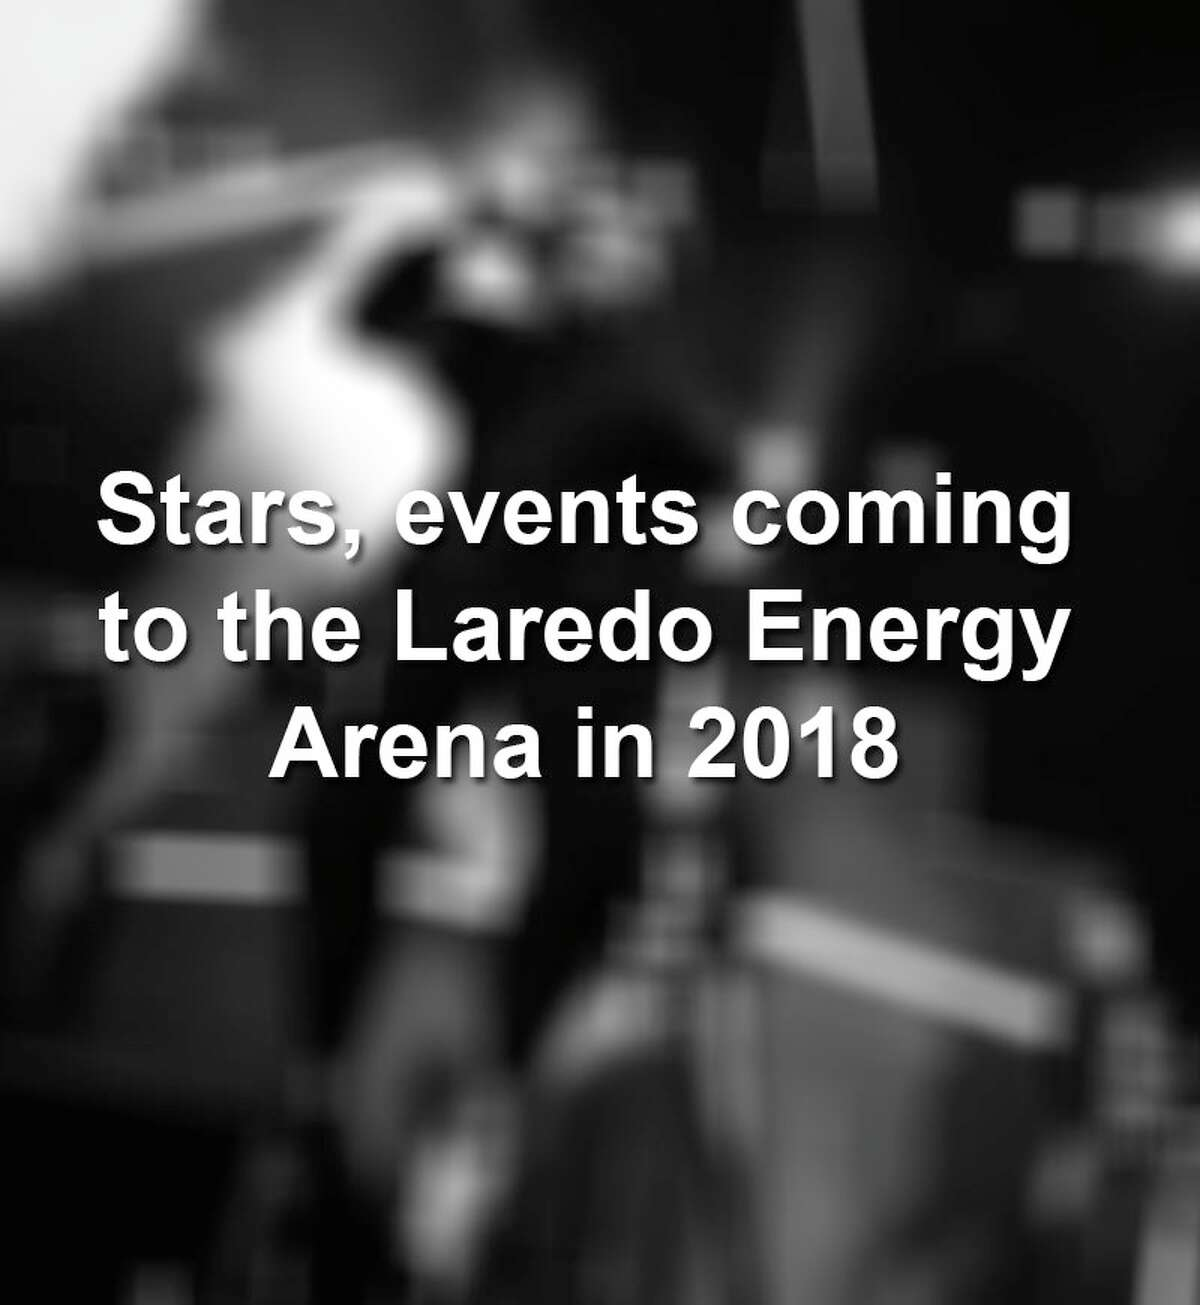 Scroll through to see the concerts and events that will take place at the Laredo Energy Arena this year.